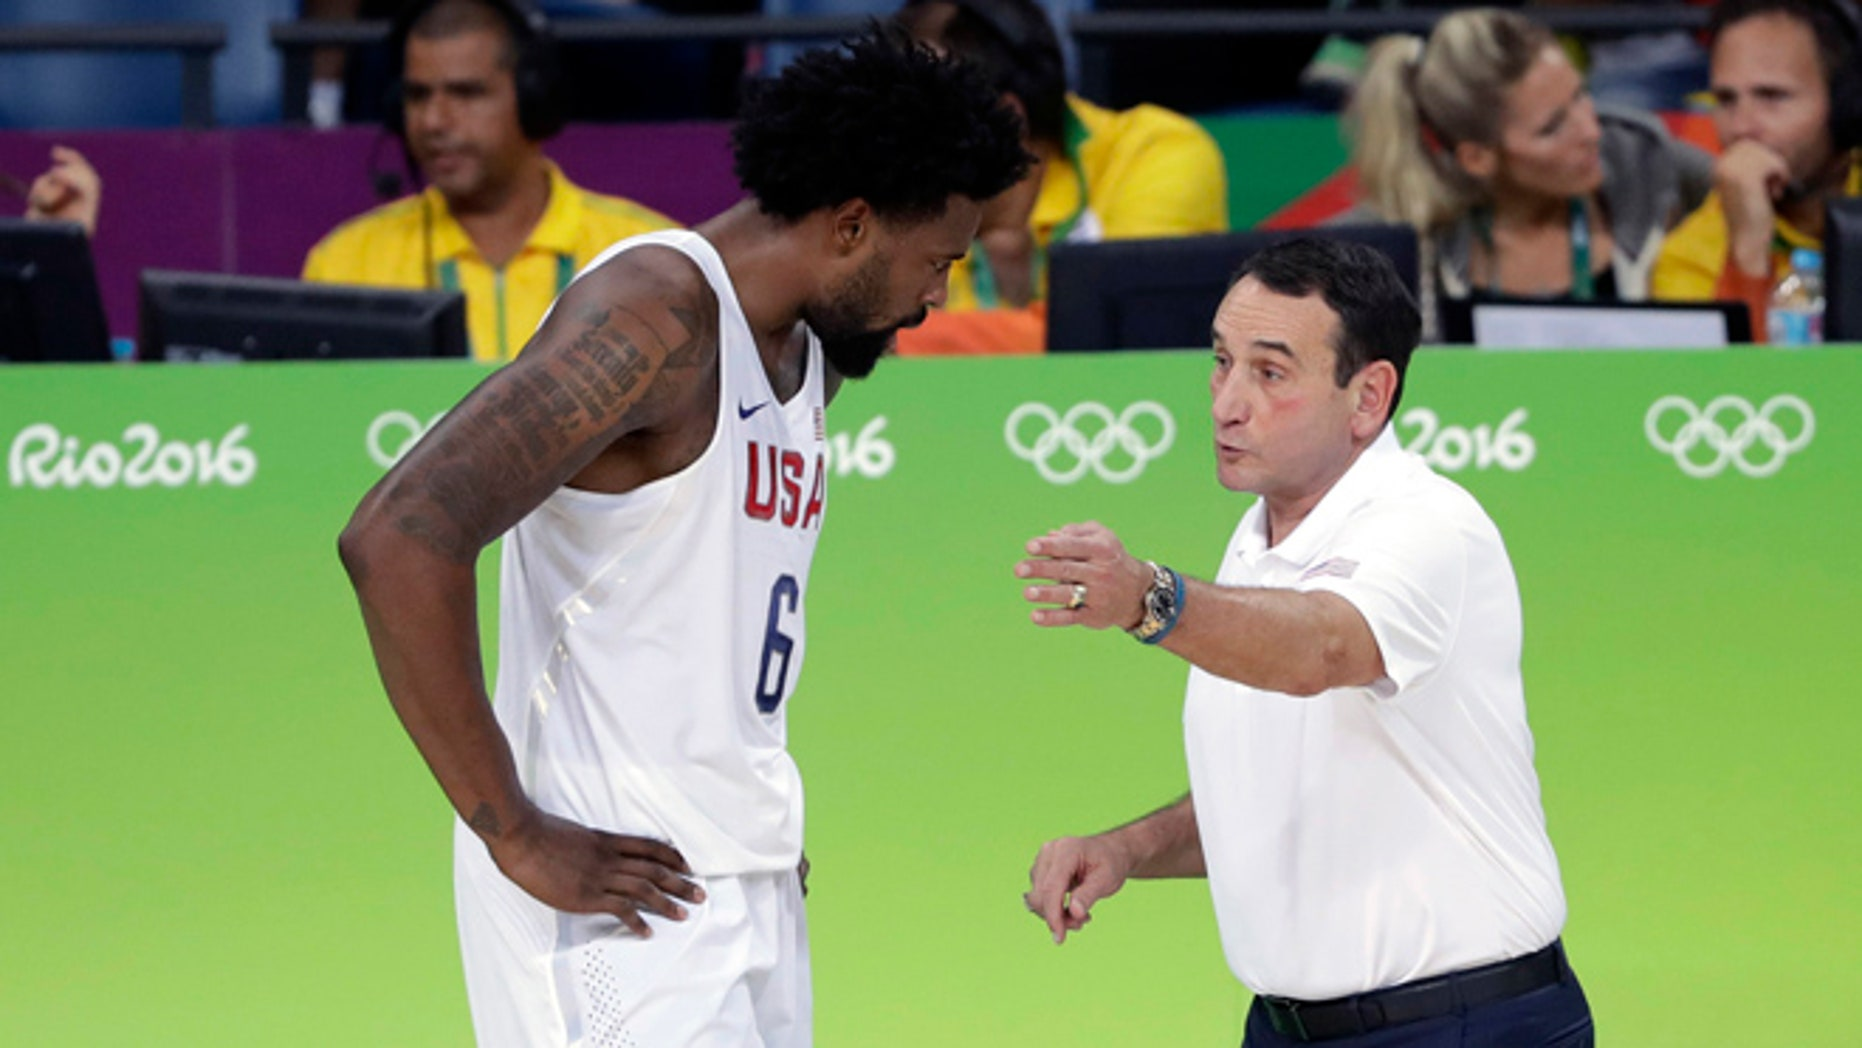 United States basketball coach Mike Krzyzewski, right, talks with DeAndre Jordan (6) during a men's basketball game against France at the 2016 Summer Olympics in Rio de Janeiro, Brazil, Sunday, Aug. 14, 2016.